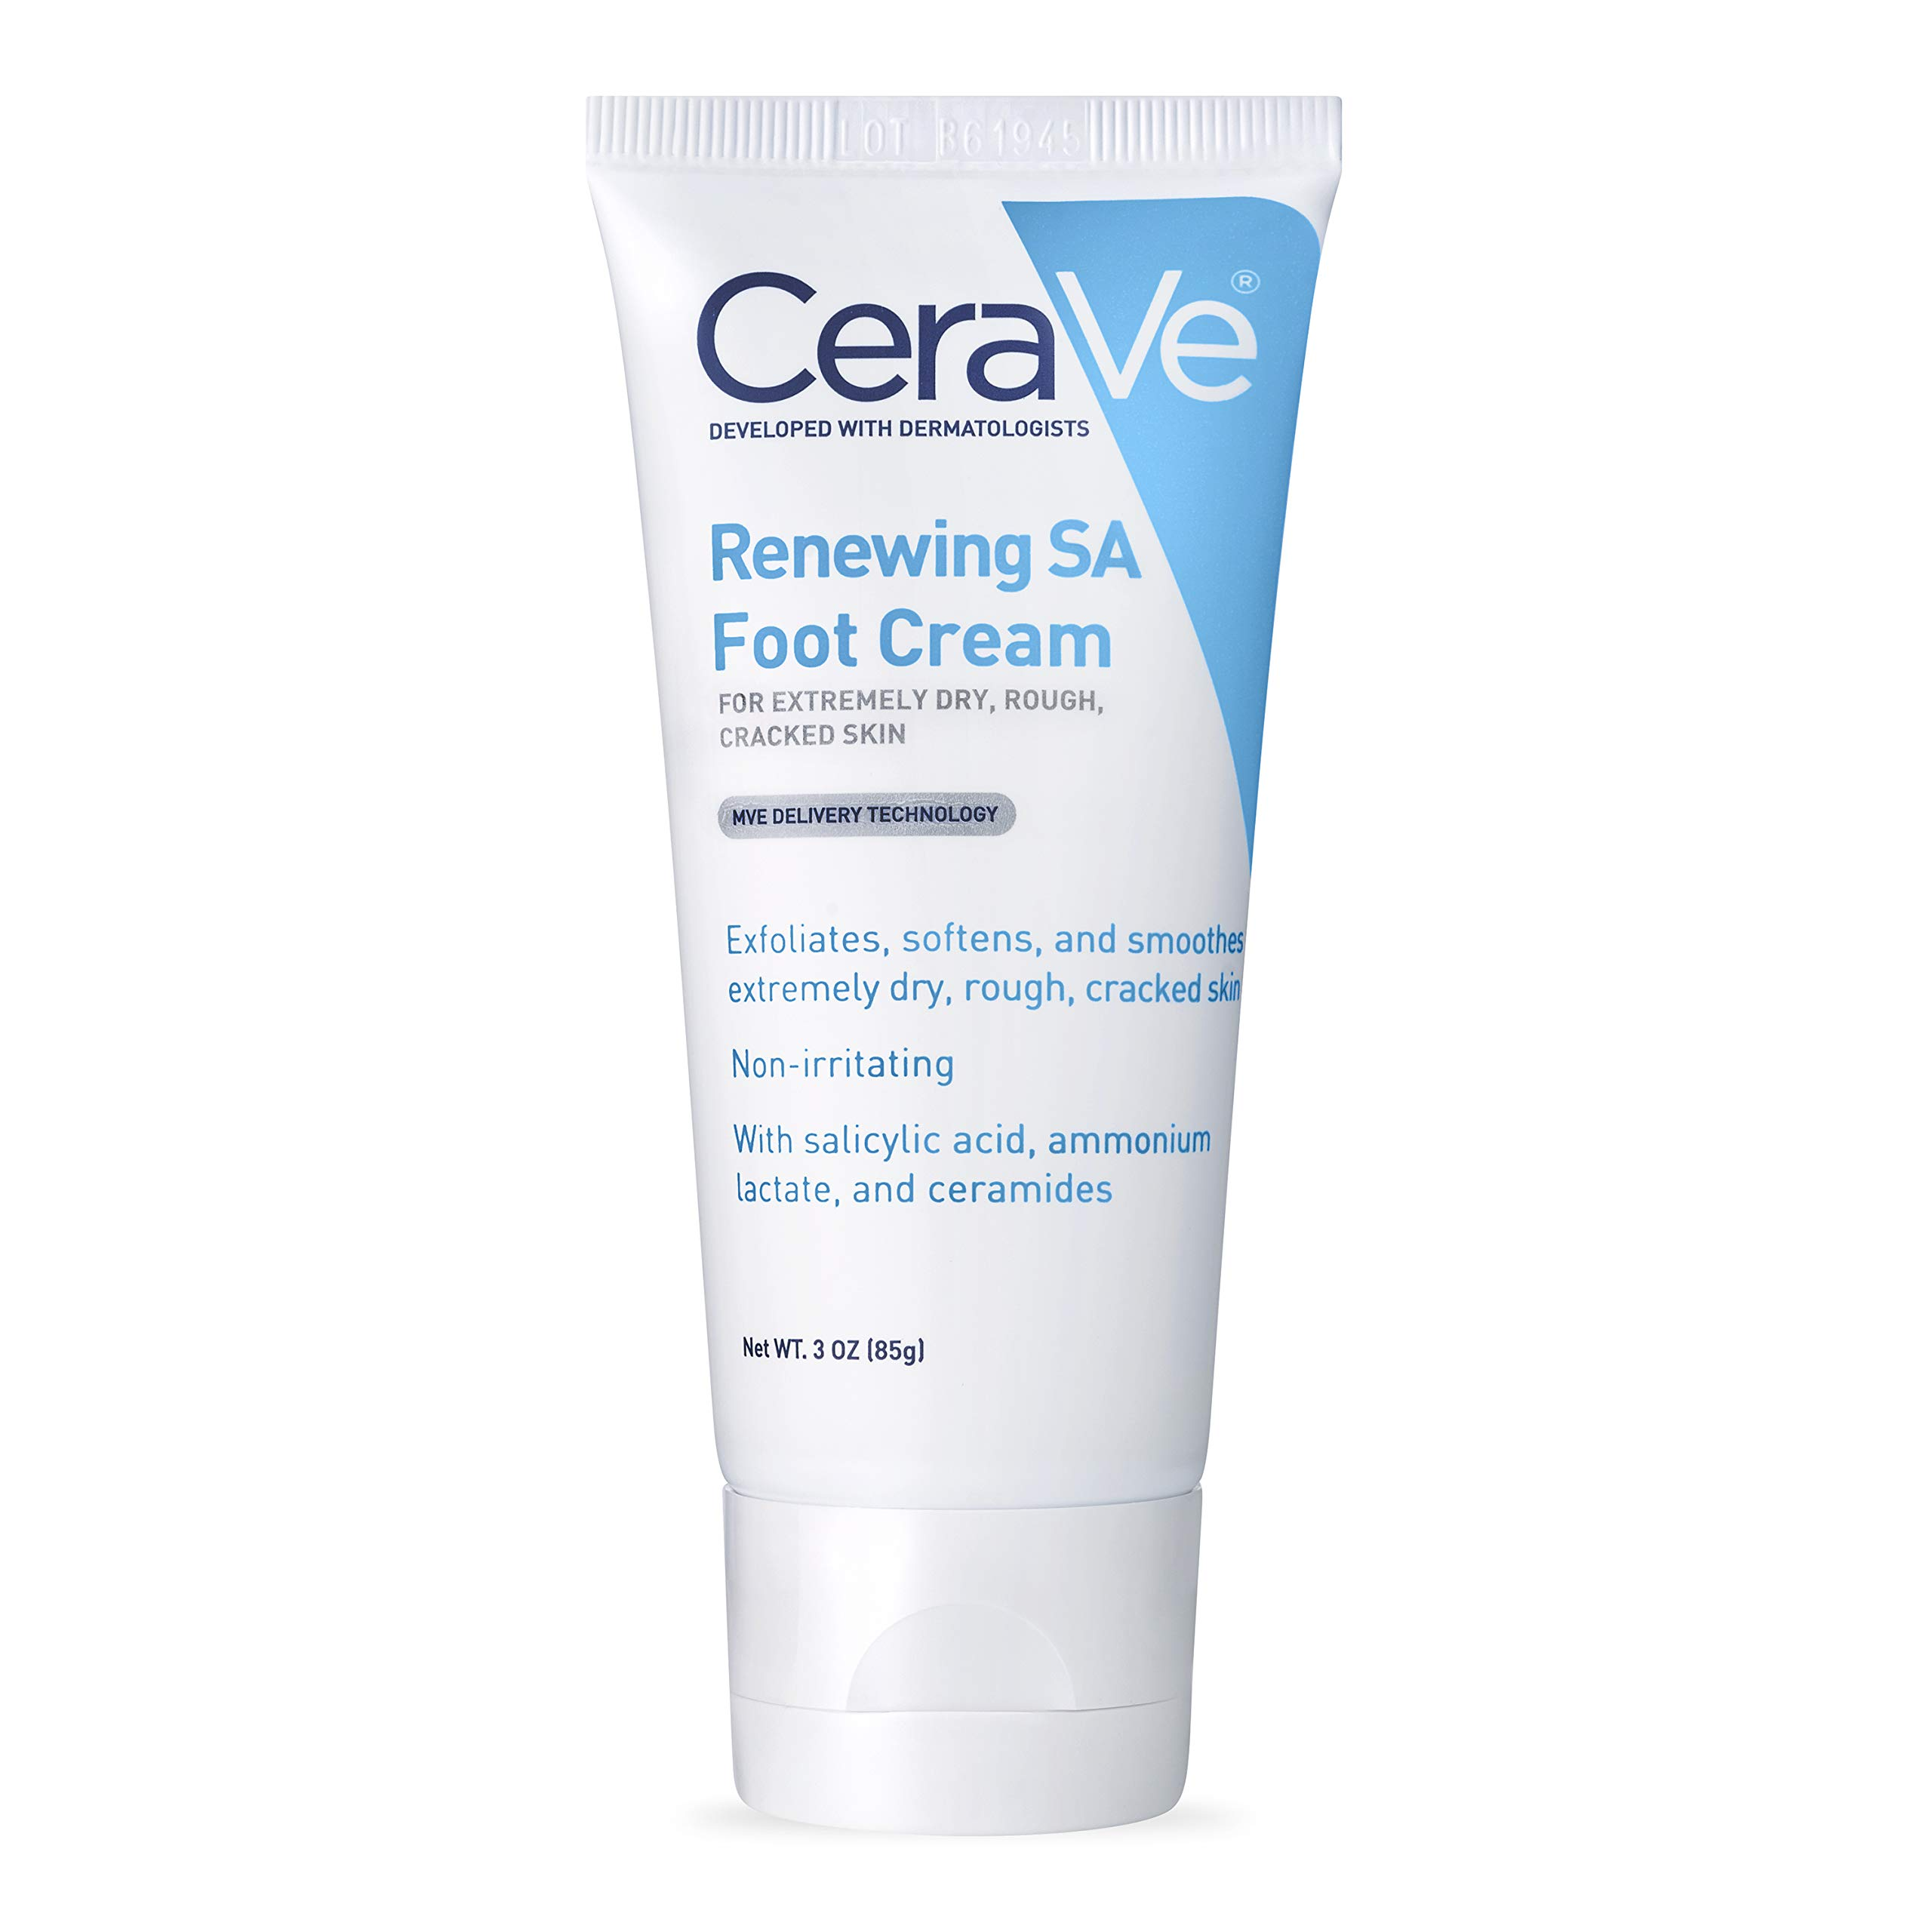 CeraVe Foot Cream with Salicylic Acid | 3 Ounce | Foot Cream for Dry Cracked Feet | Fragrance Free by CeraVe